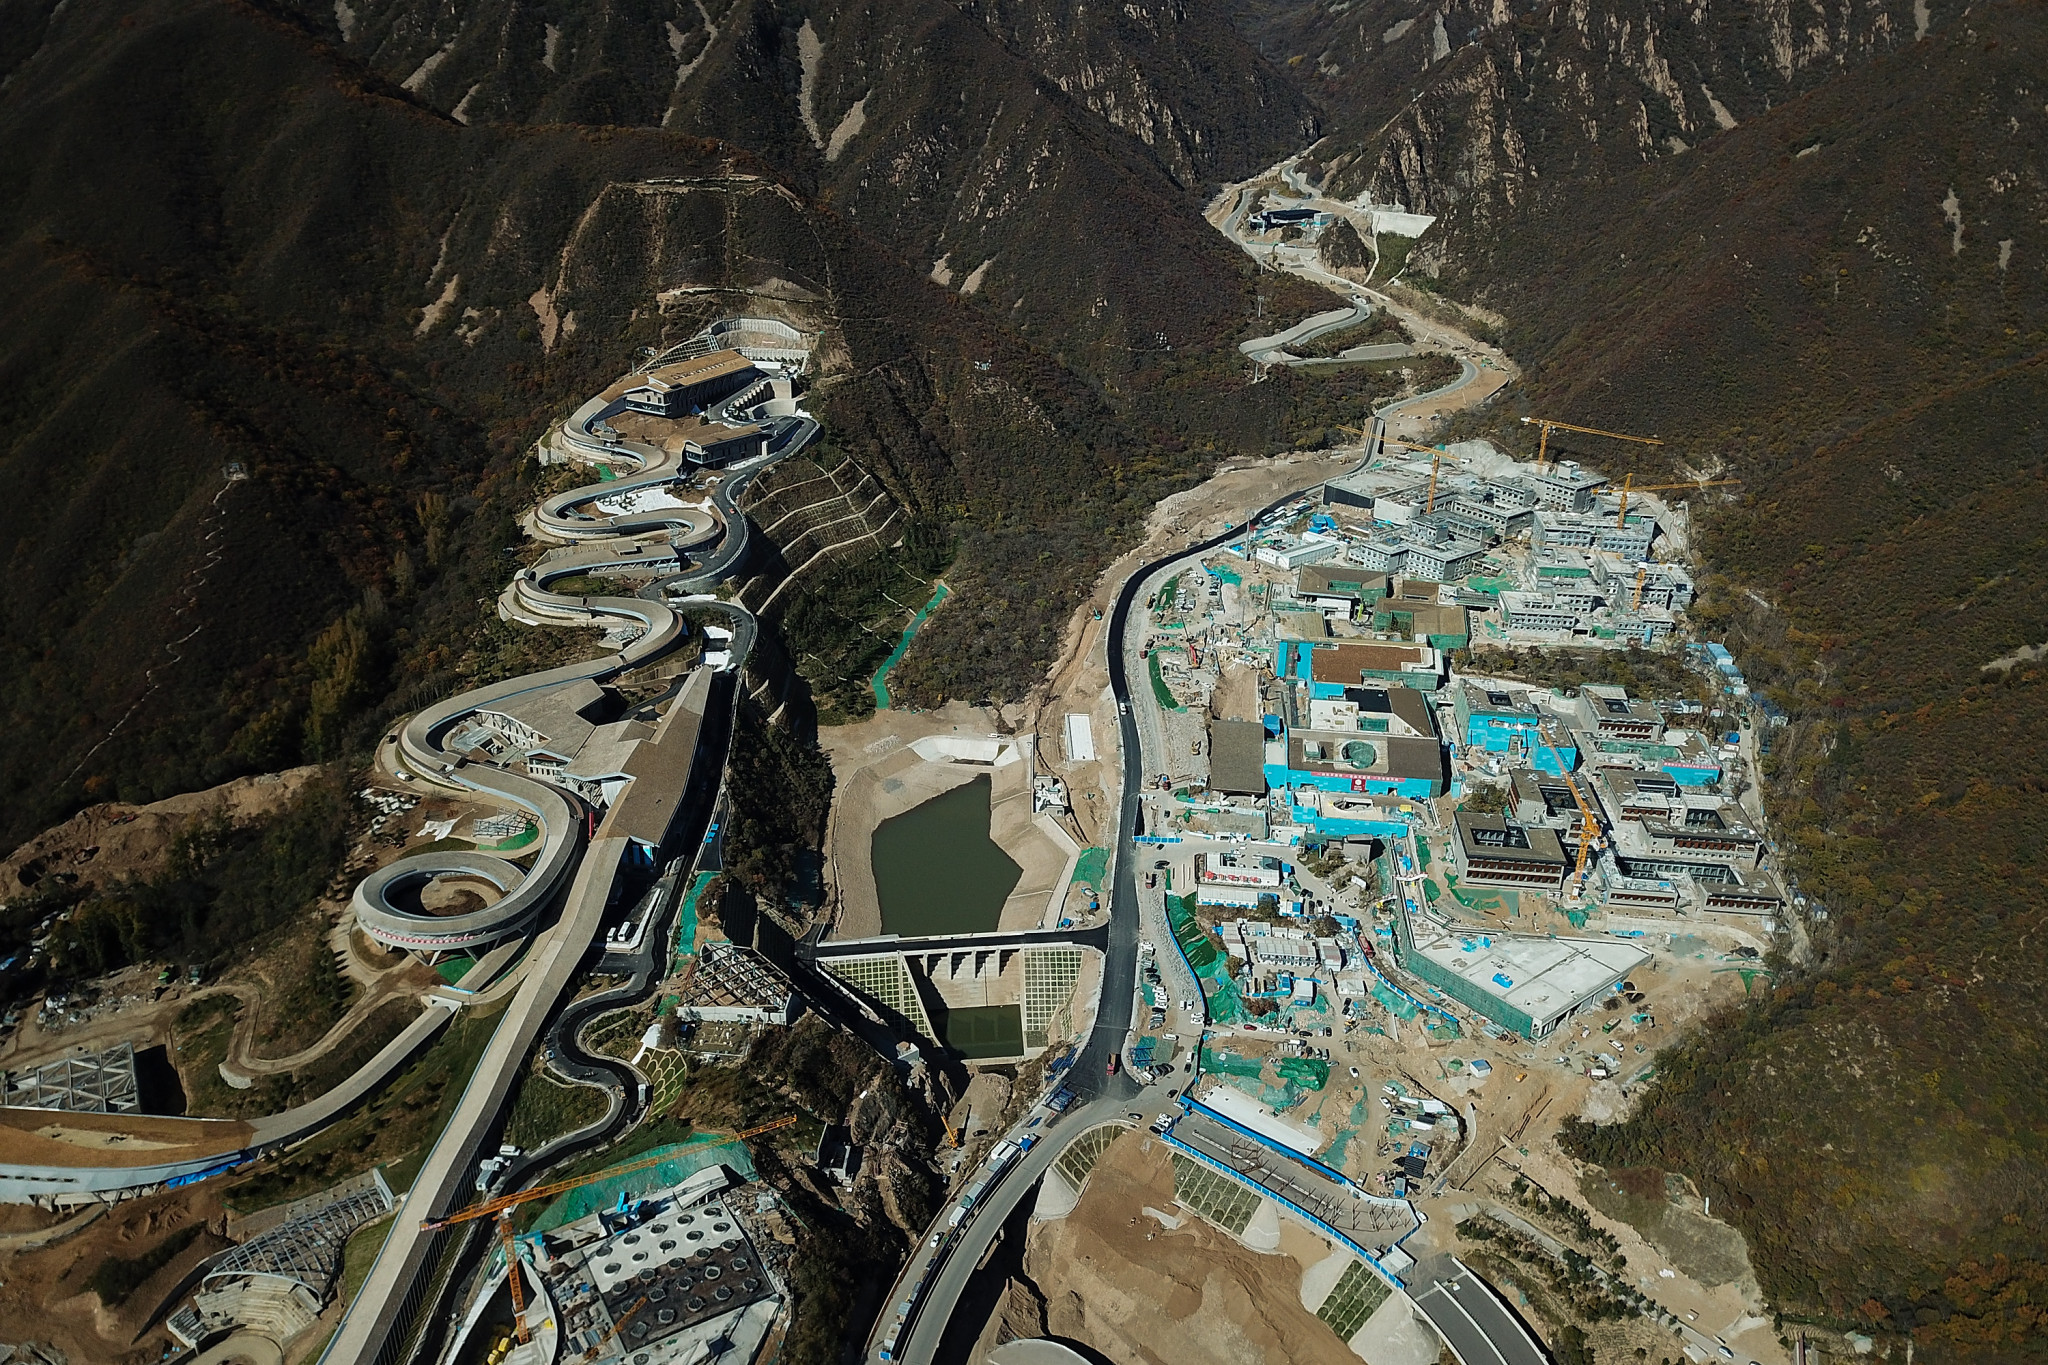 """New work on """"green"""" hydrogen energy project for Beijing 2022 begins on 300 days to go milestone"""